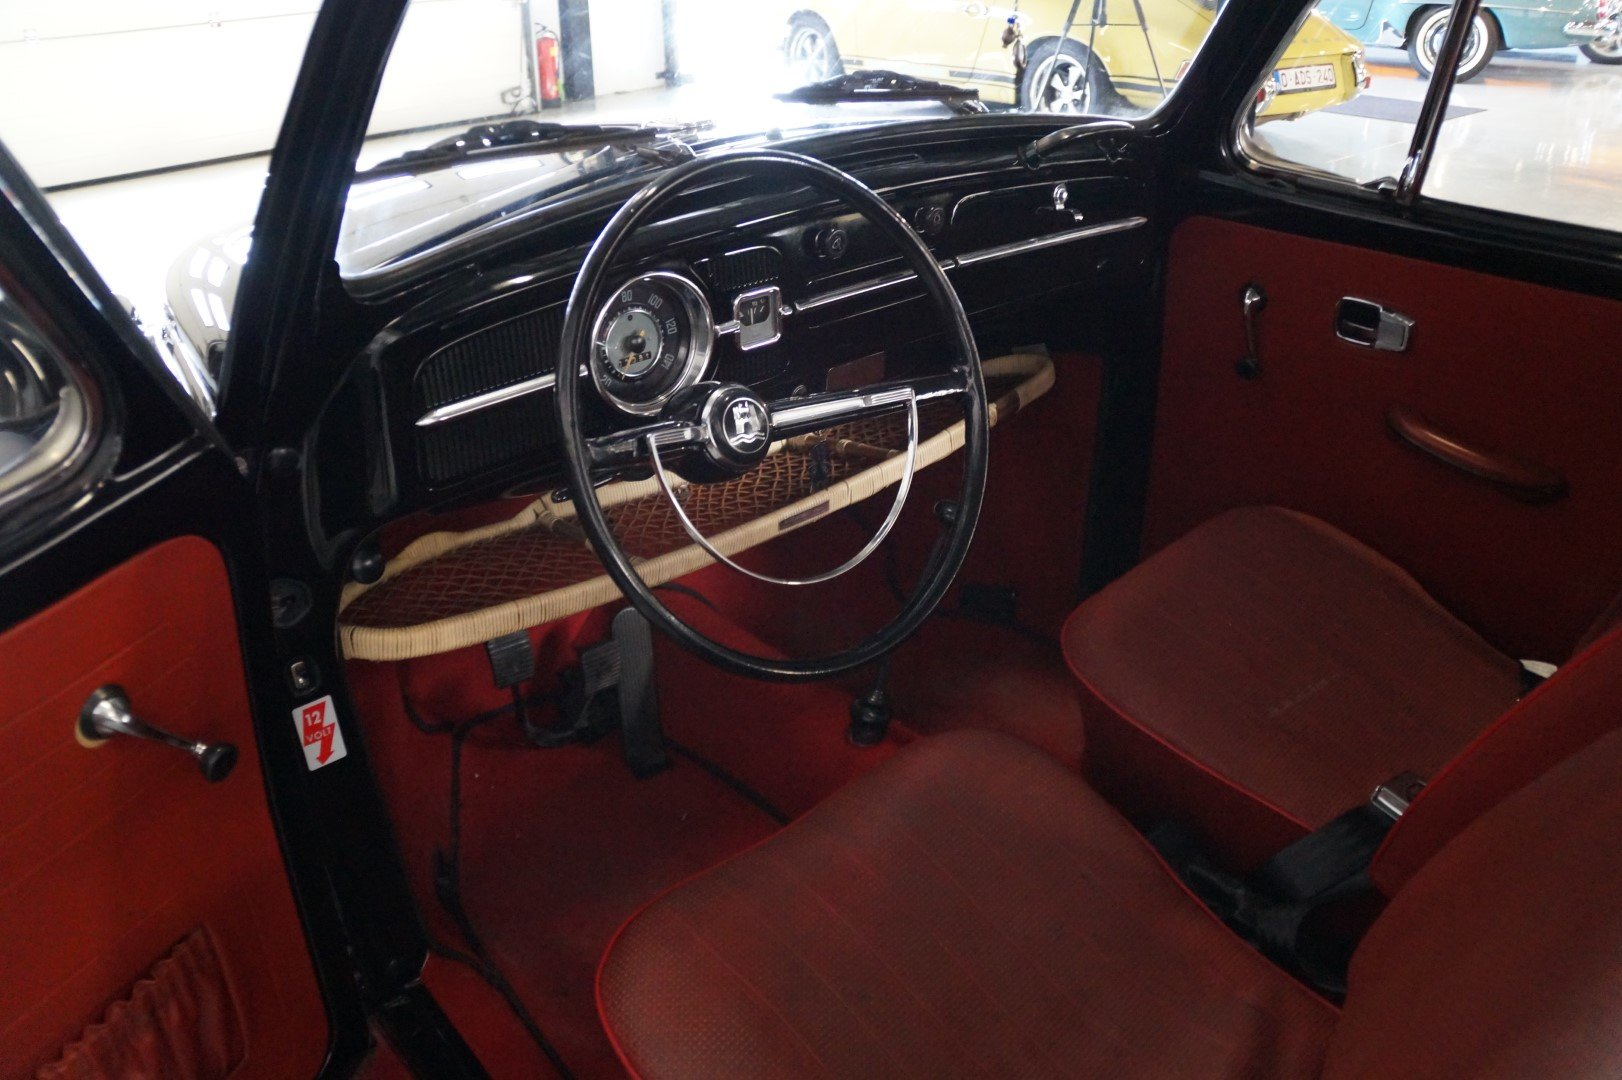 VOLKSWAGEN BEETLE matching numbers fully restored (1967) For Sale (picture 4 of 6)